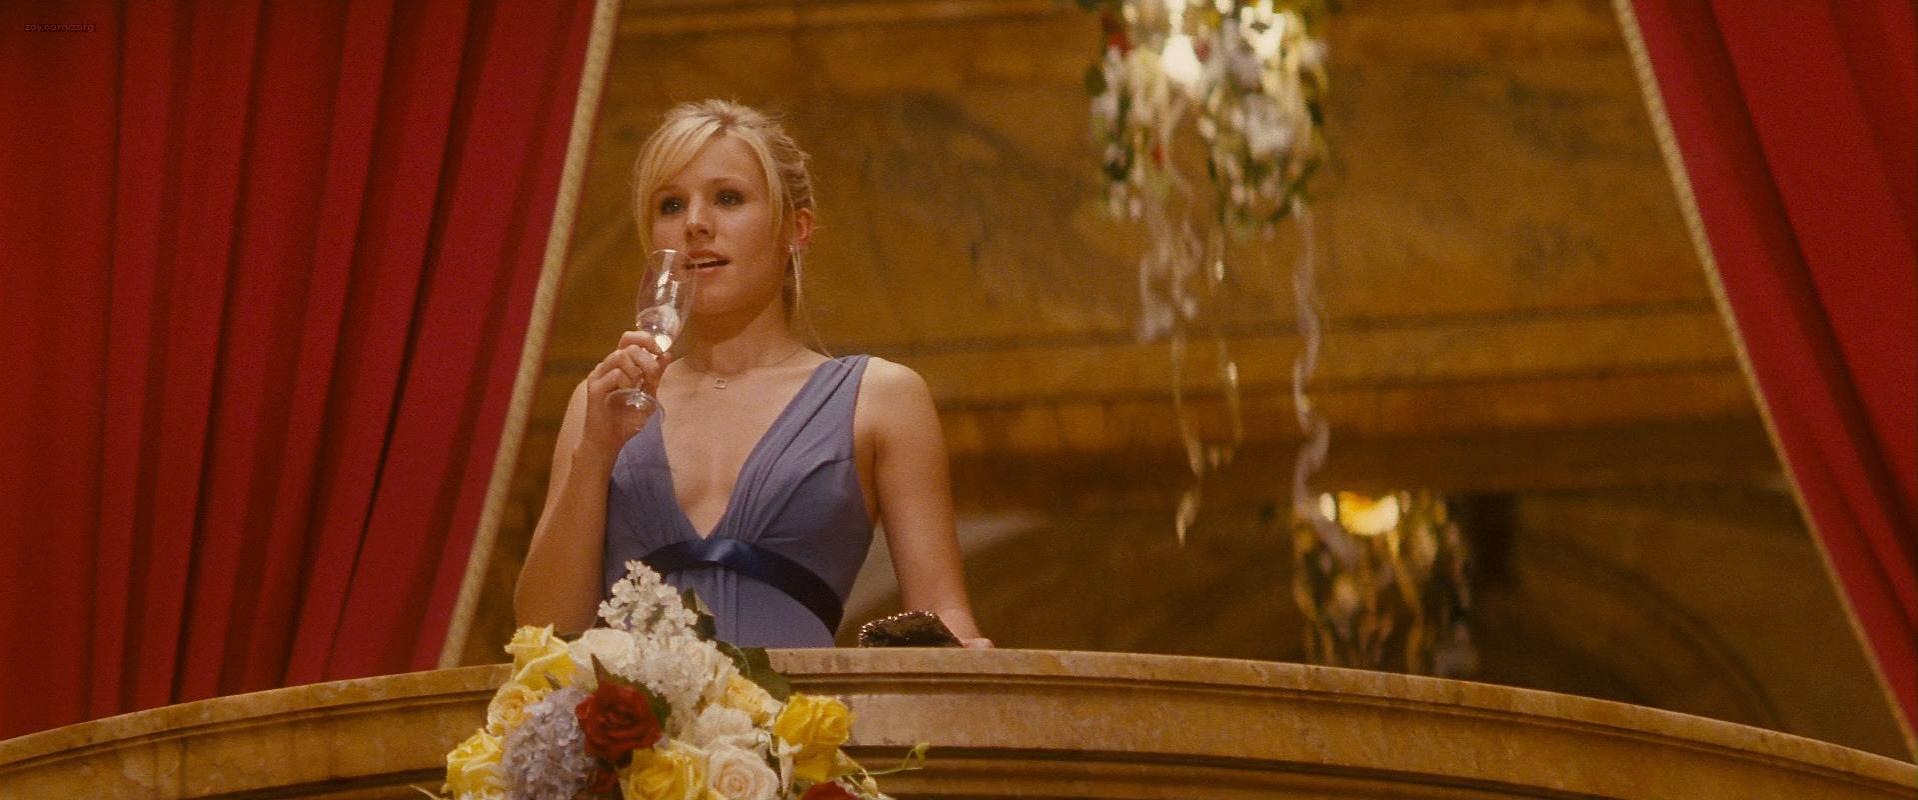 Kristen Bell sexy - When In Rome (2010)